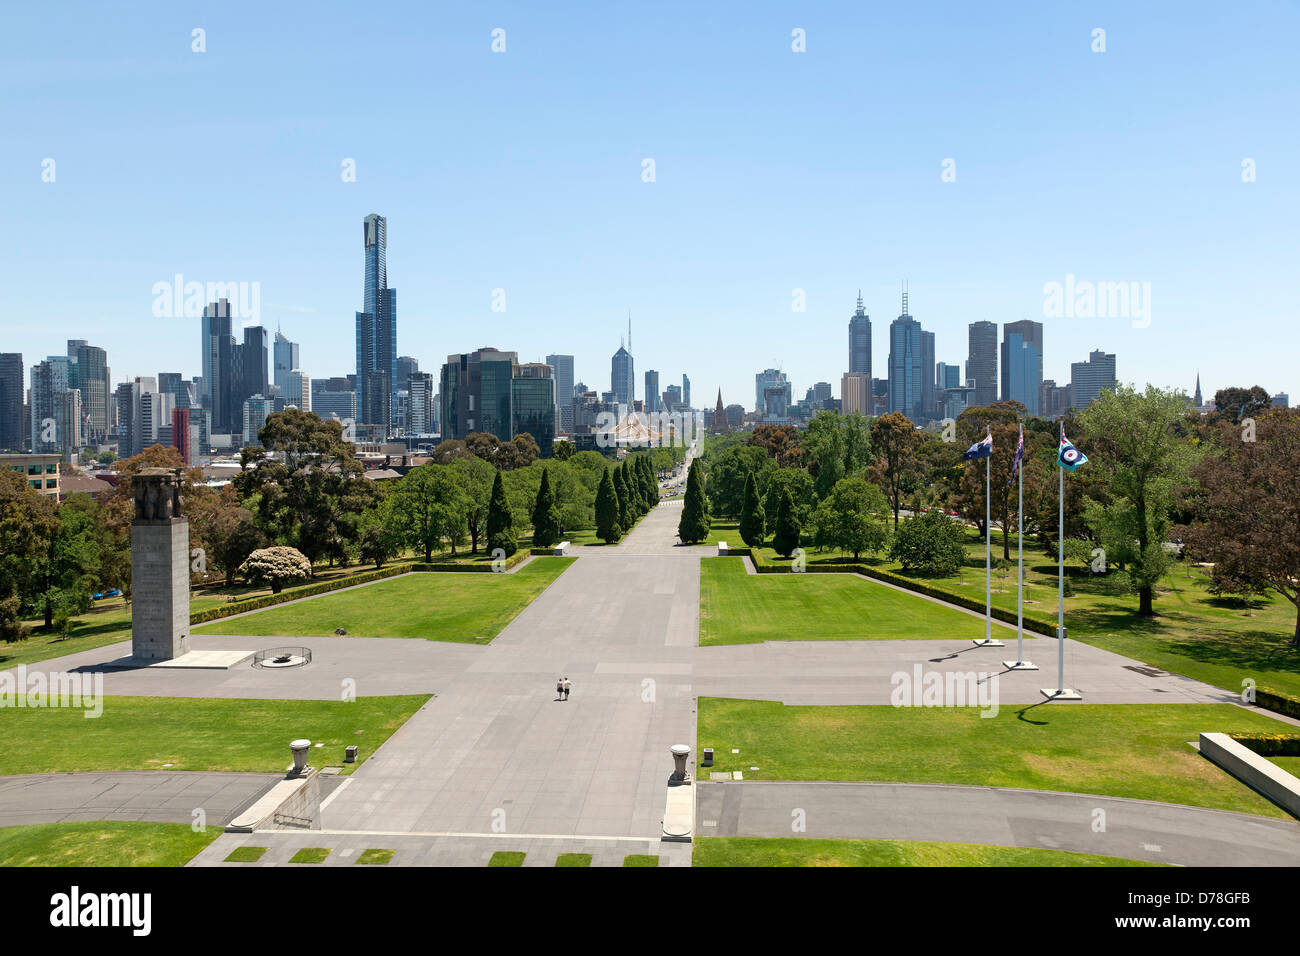 St Kilda Road Street view up to the central city, Melbourne,Australia - Stock Image